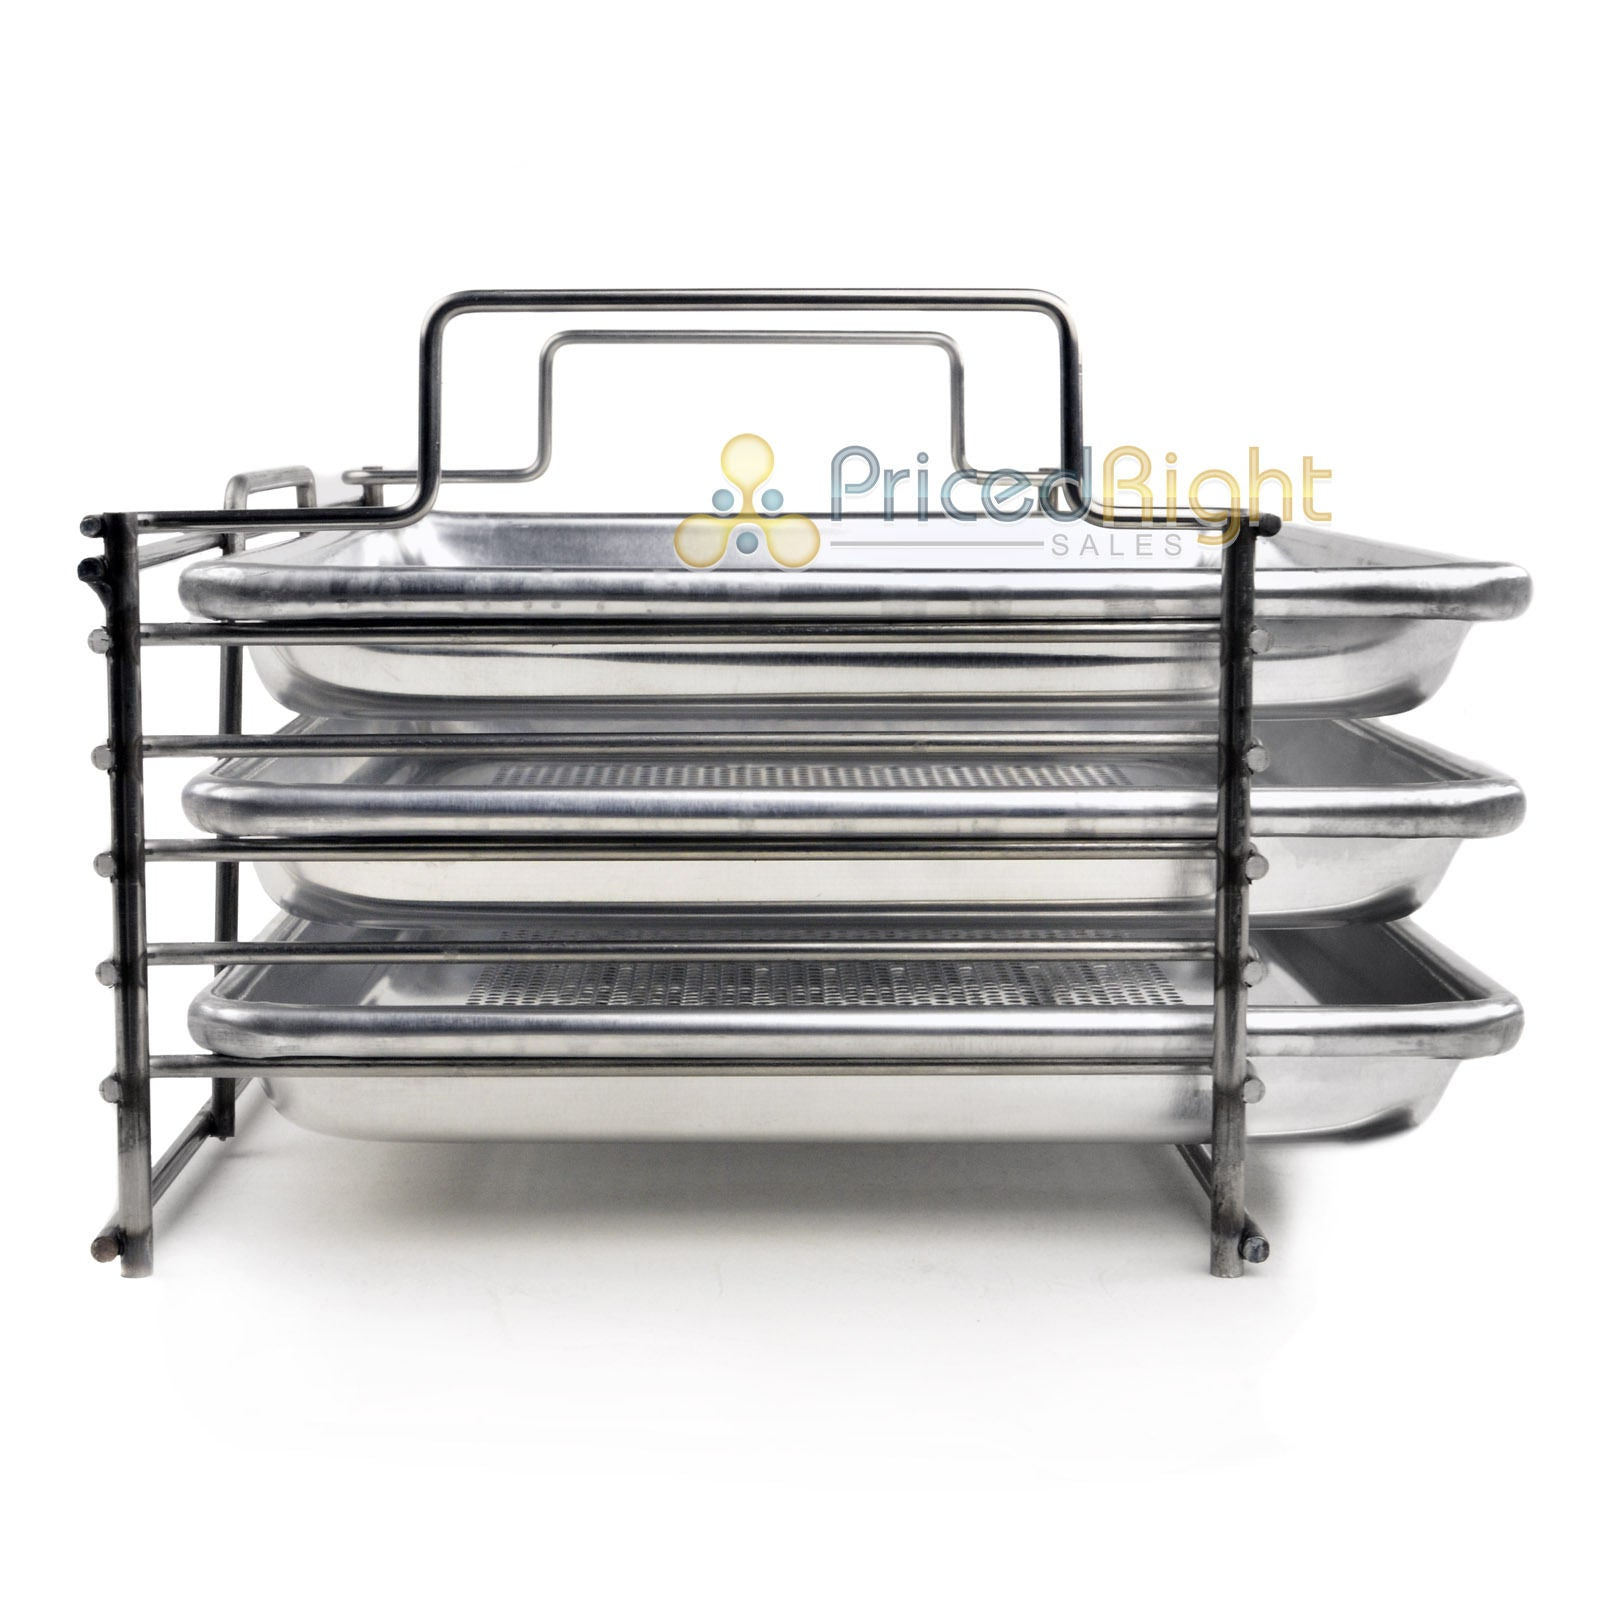 Bull Rack Grill Racking Tray System BR3 Grilling More Space Jerky Fish Pizza New